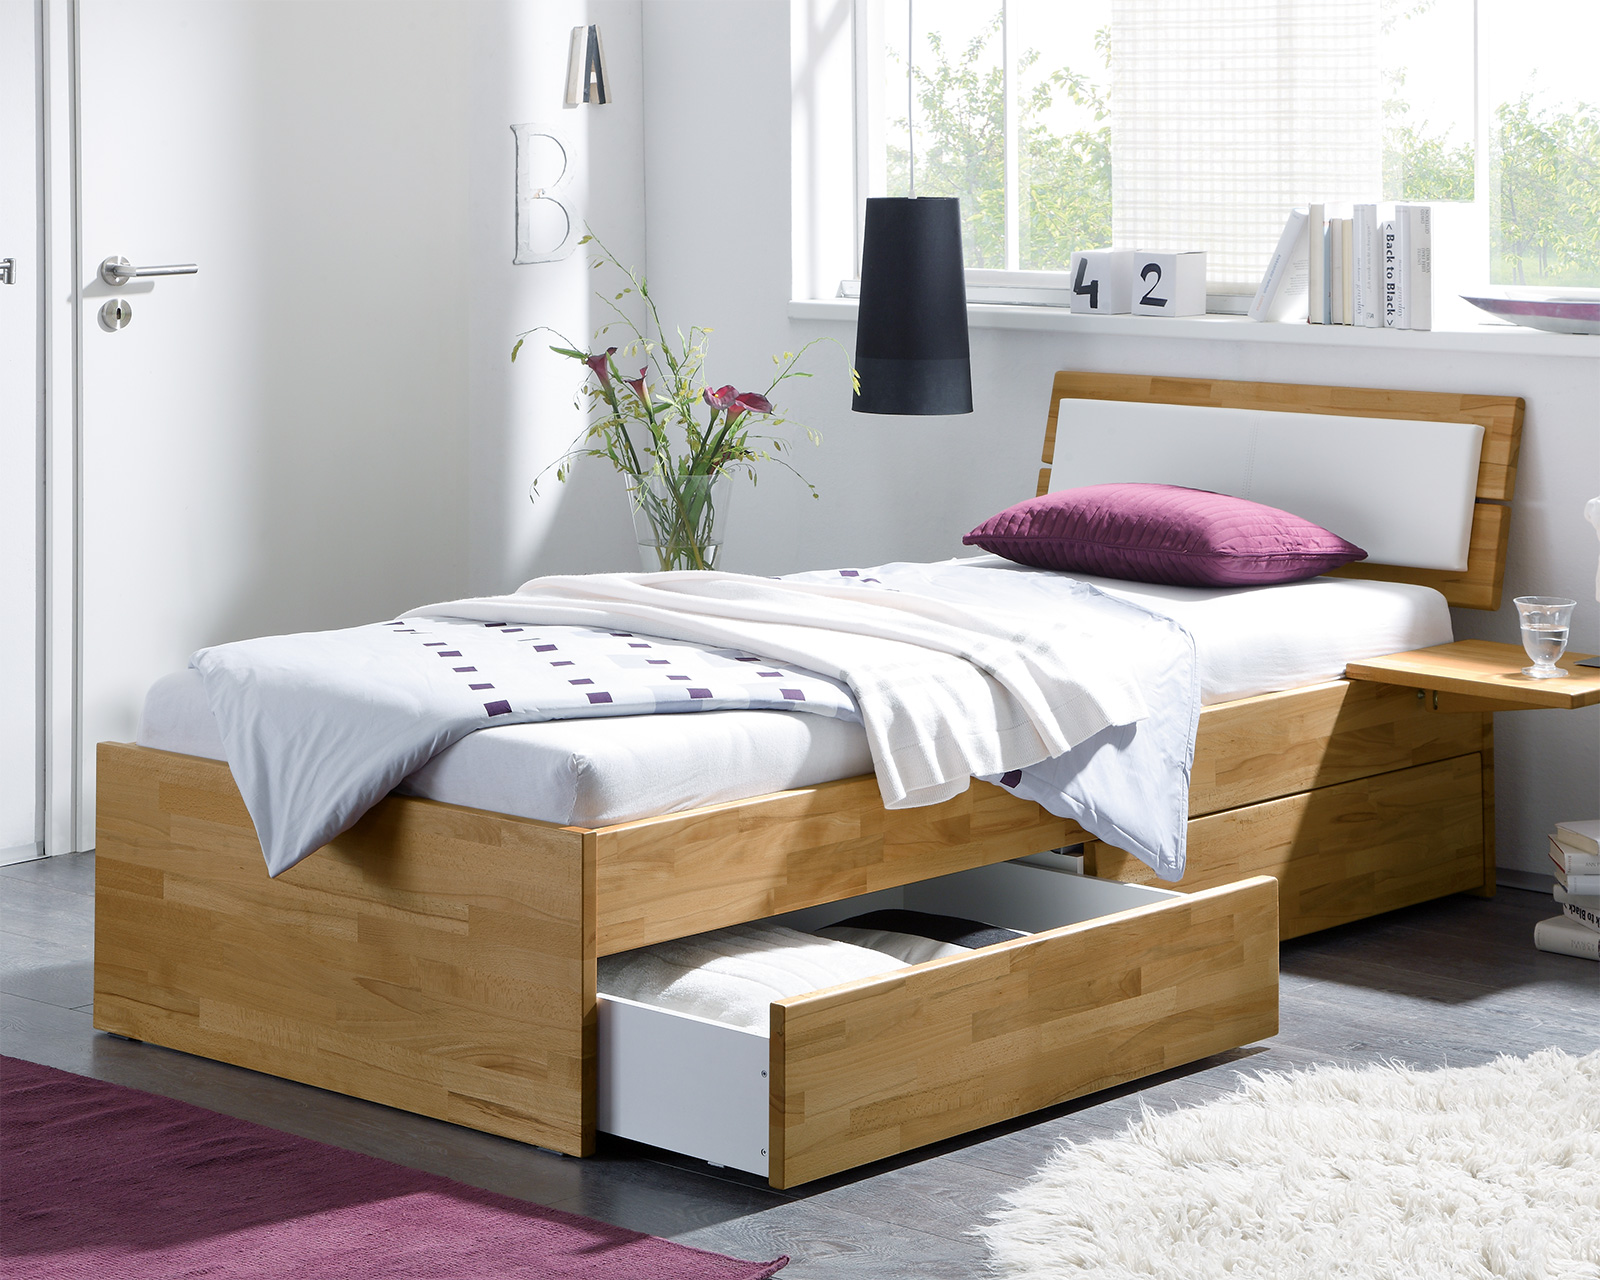 moderne einzelbett leova aus massiver kernbuche mit zwei schu. Black Bedroom Furniture Sets. Home Design Ideas